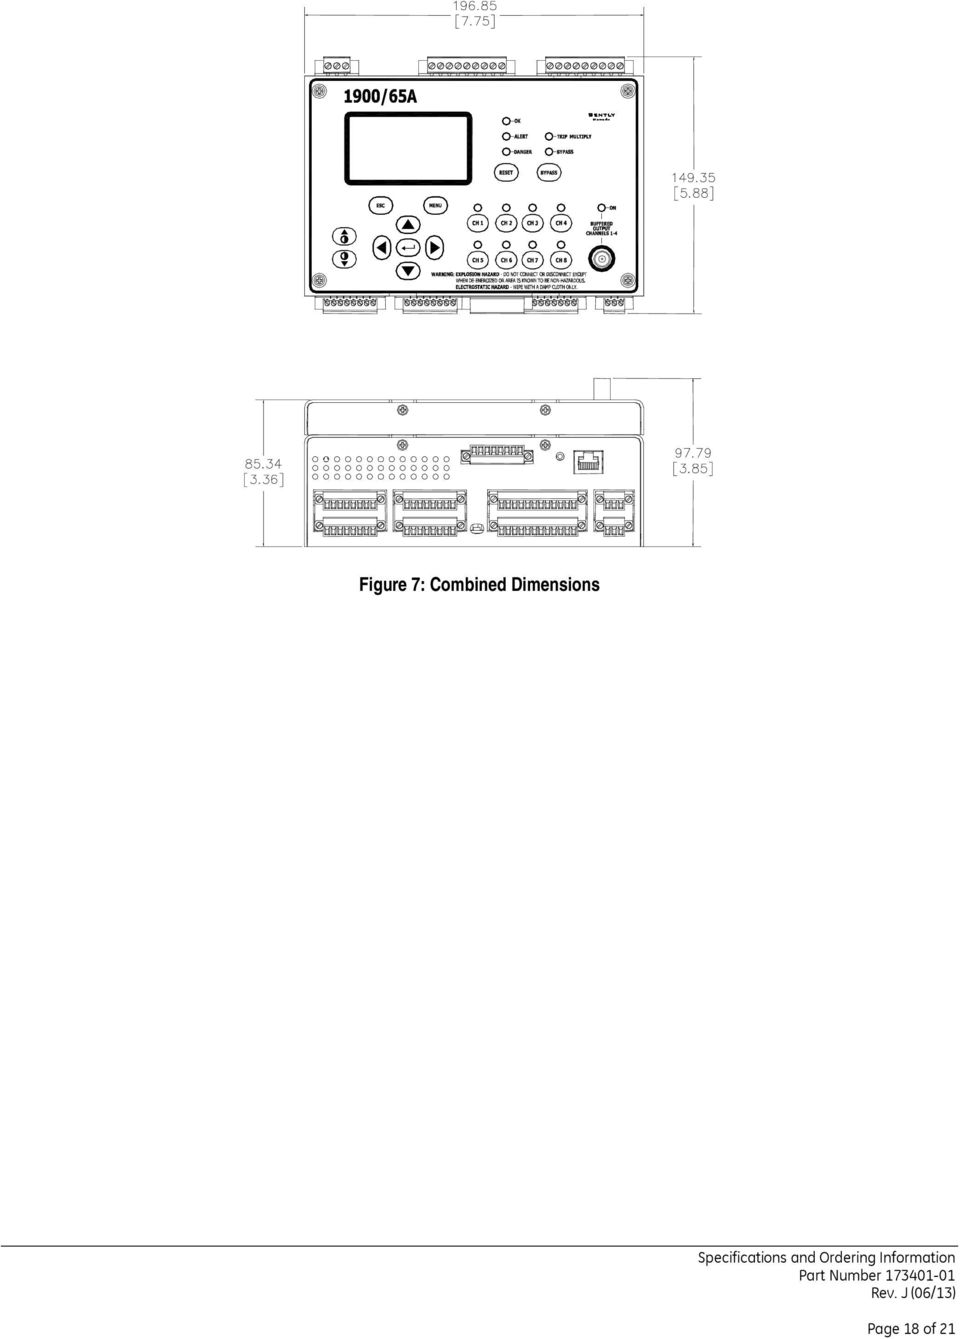 hight resolution of  1900 65a general purpose equipment monitor pdf on hvac diagrams motor diagrams